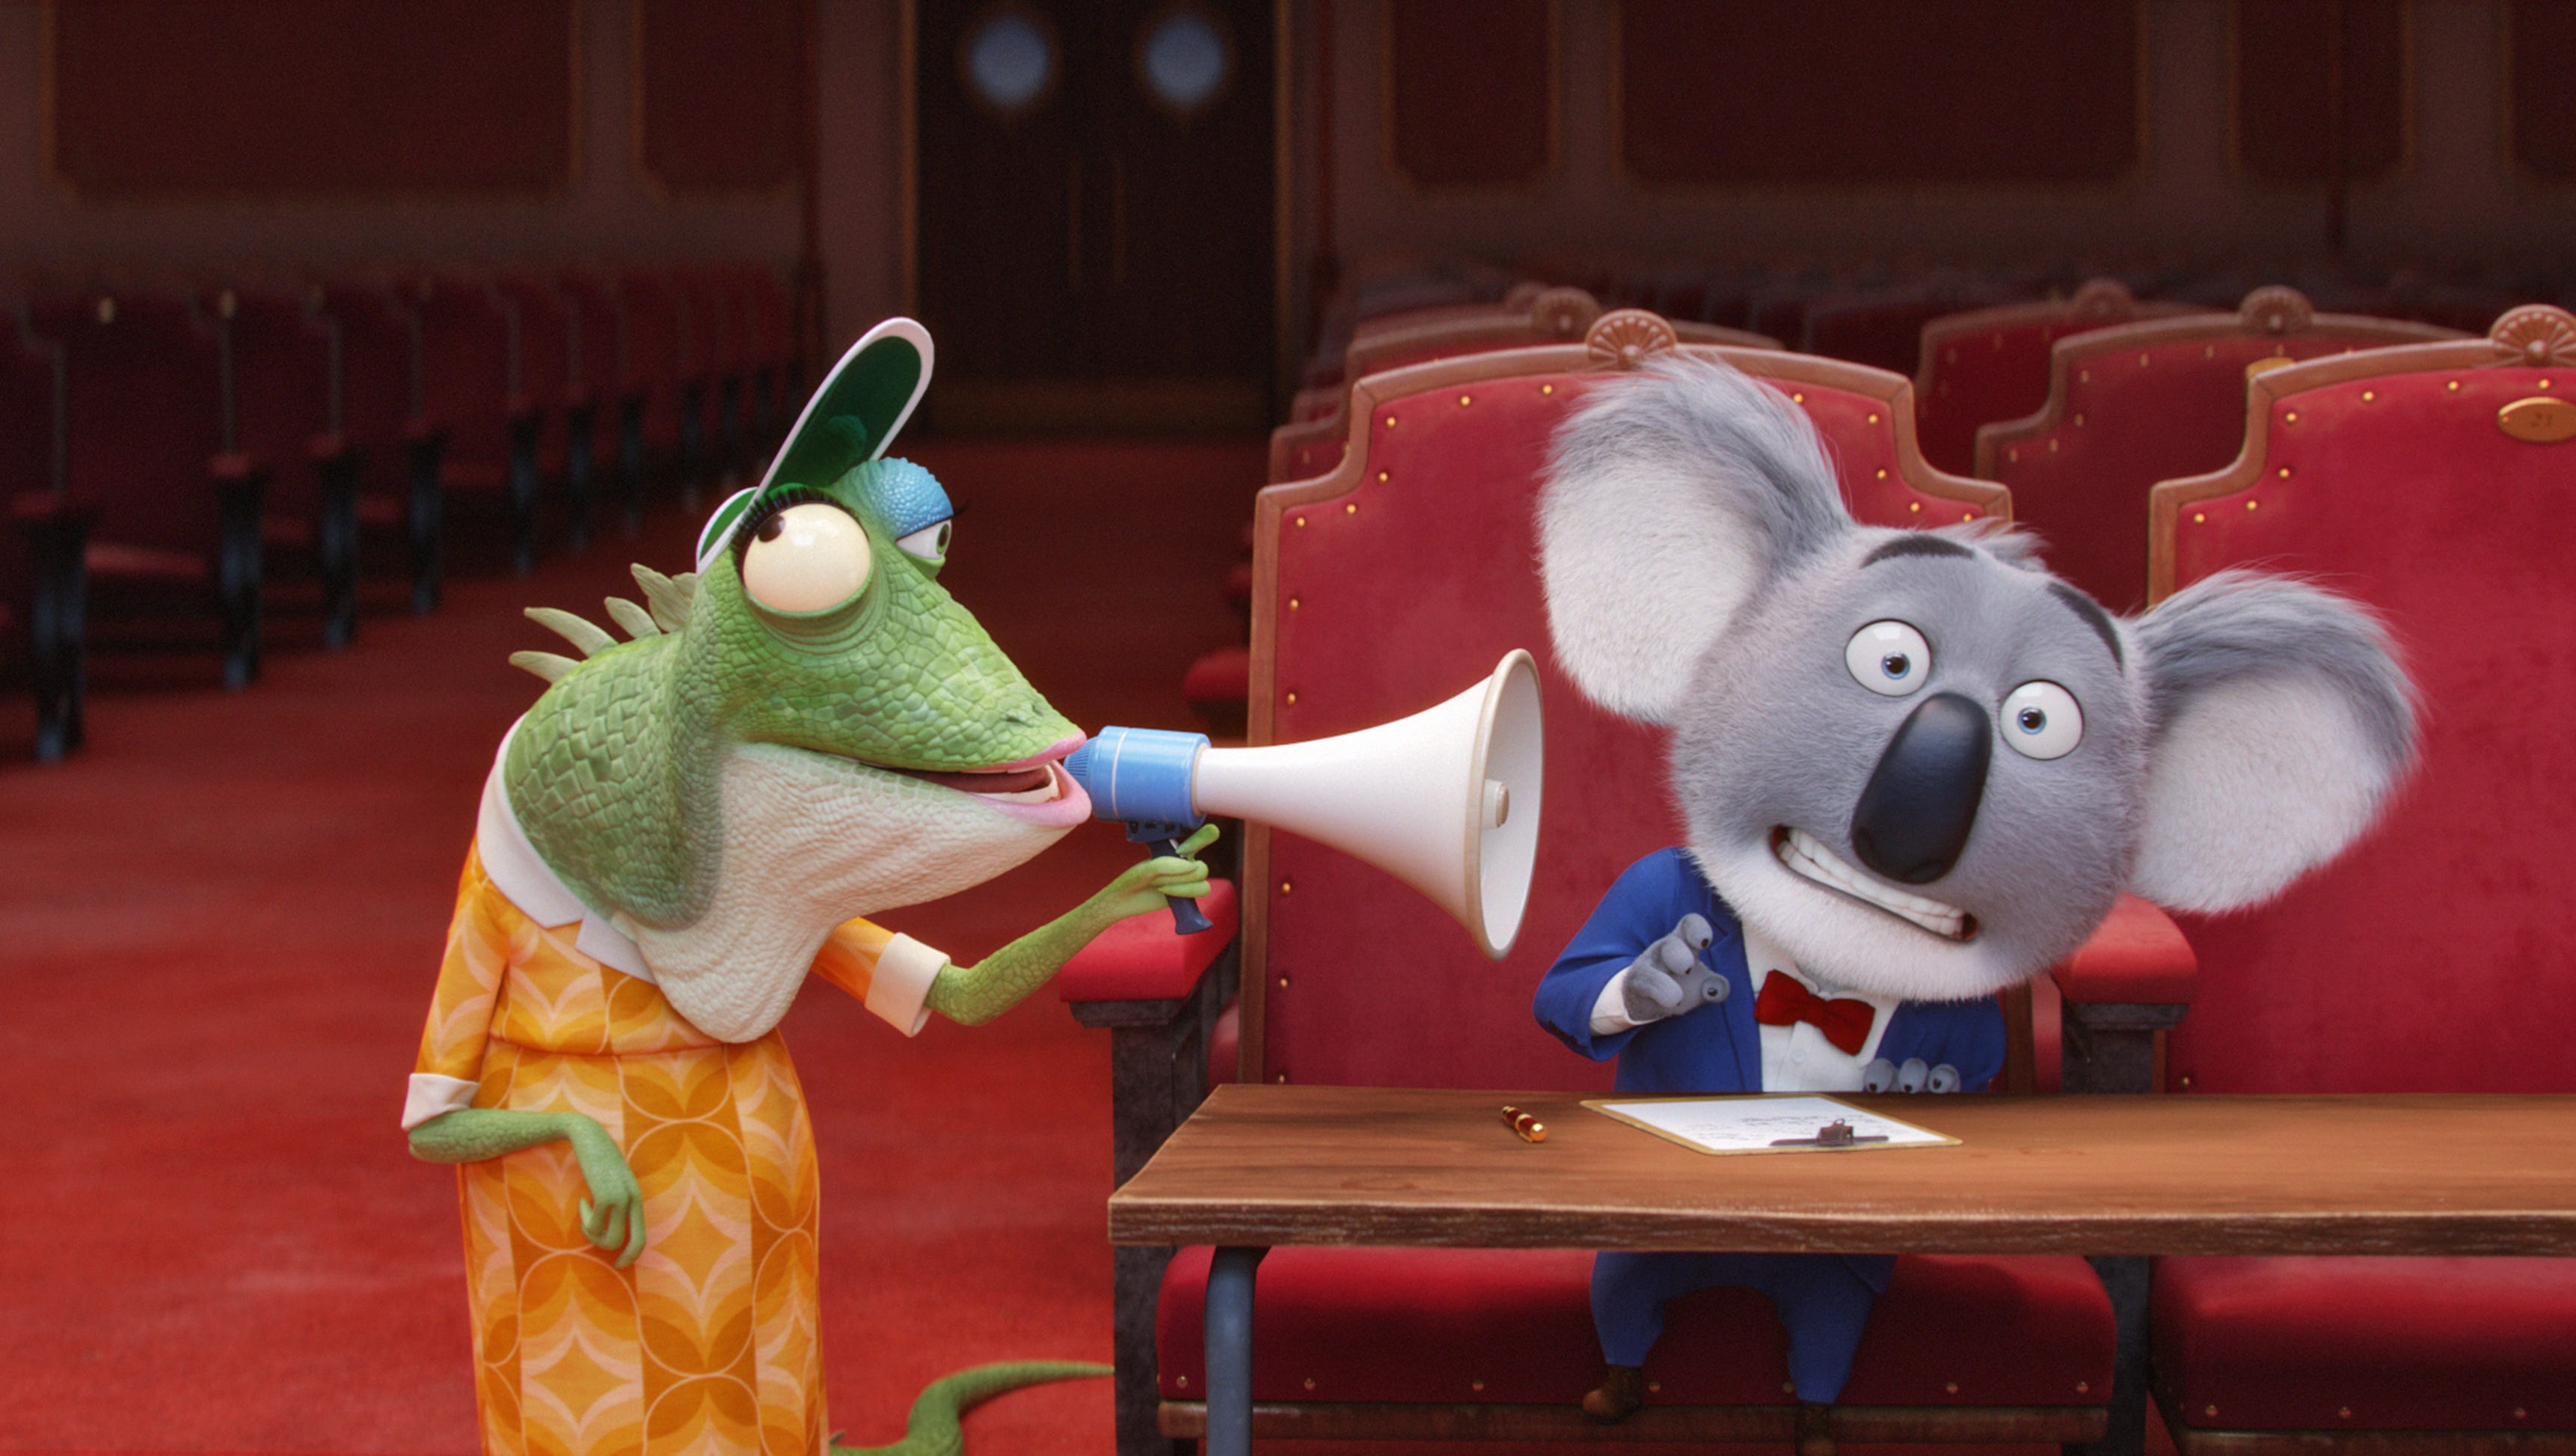 sing 2 is underway bursting into theaters christmas 2020 - This Christmas Full Movie Free Online